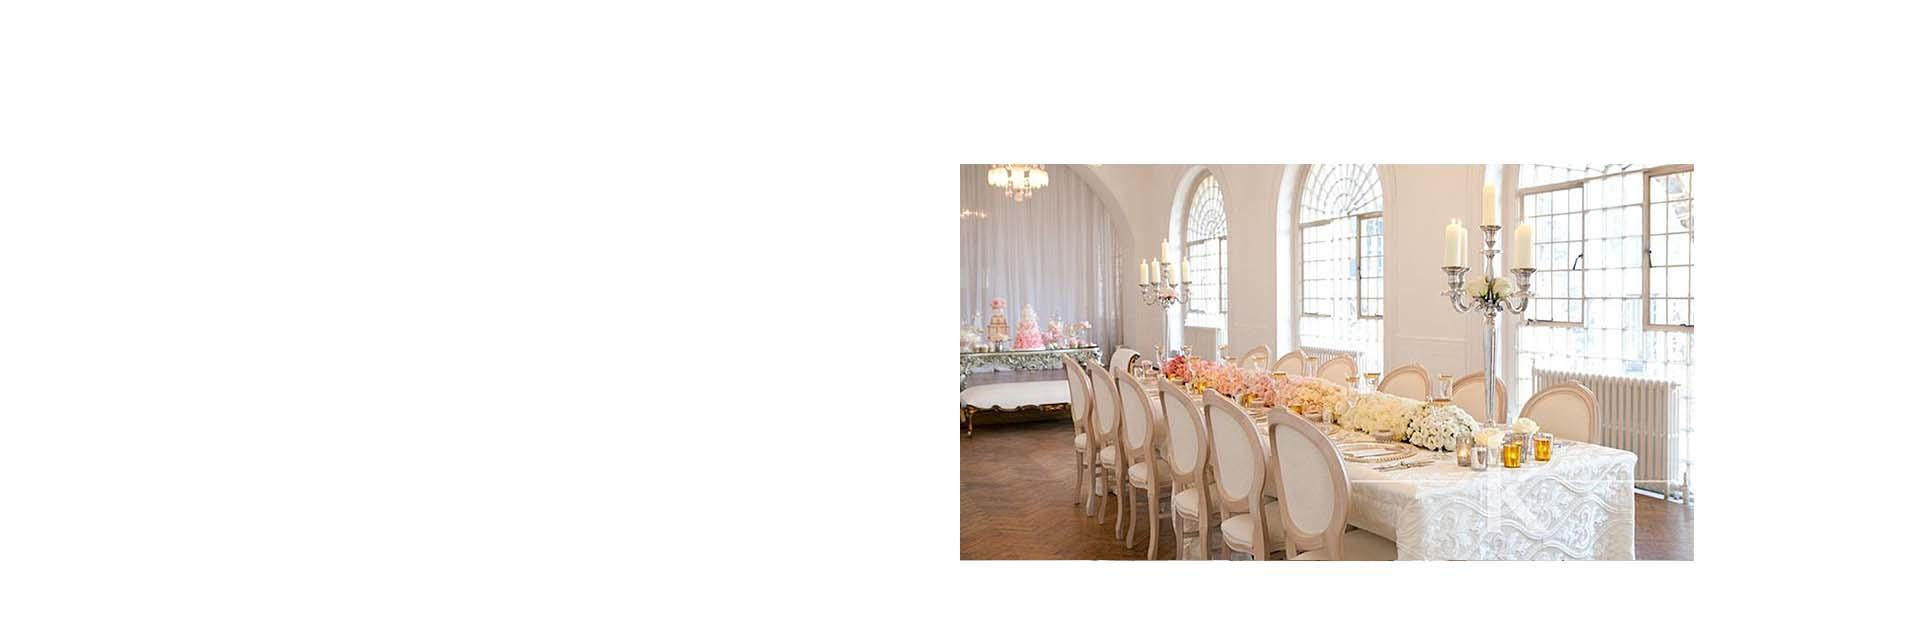 Featured Wedding Venue: One Marylebone